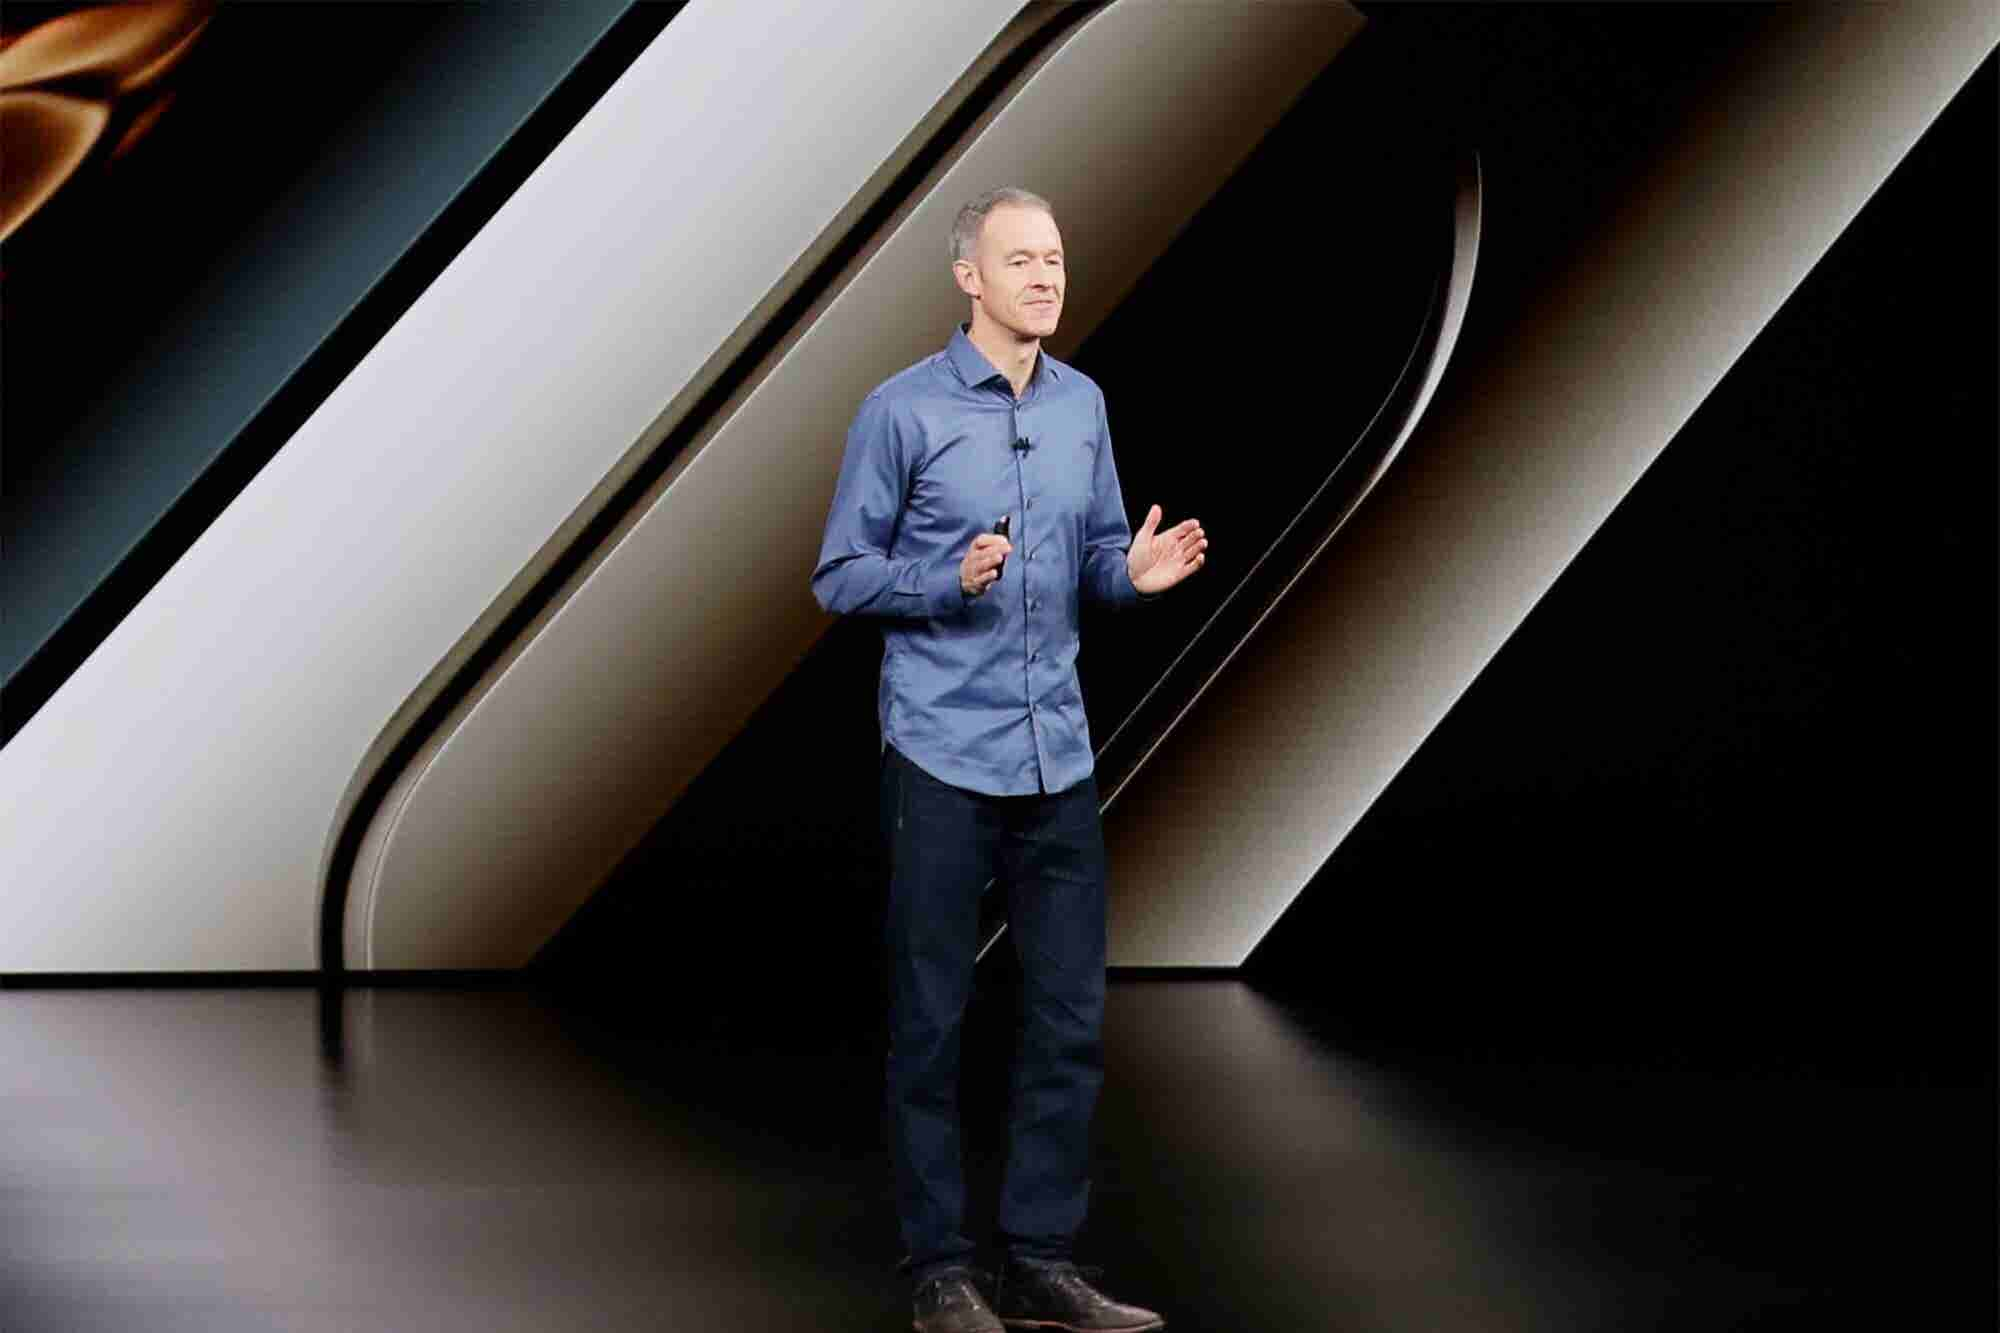 Apple Says It Does Not Want to be an 'Elitist' Company as iPhone Prices Continue to Rise